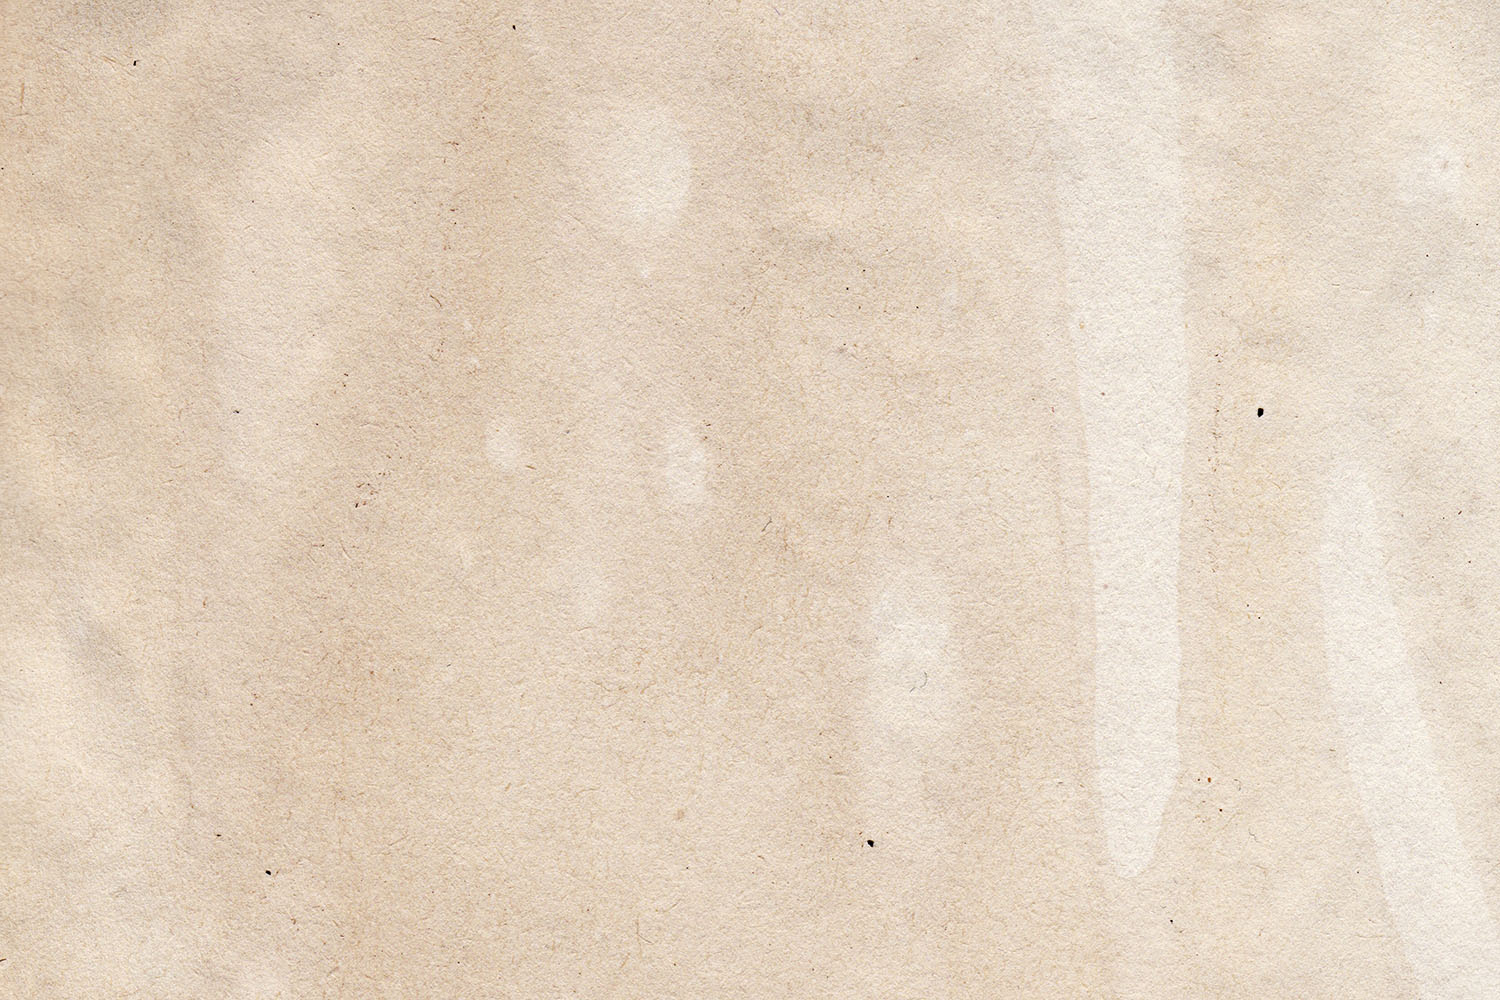 Handcrafted Vintage Paper Textures Vol. 02 example image 3